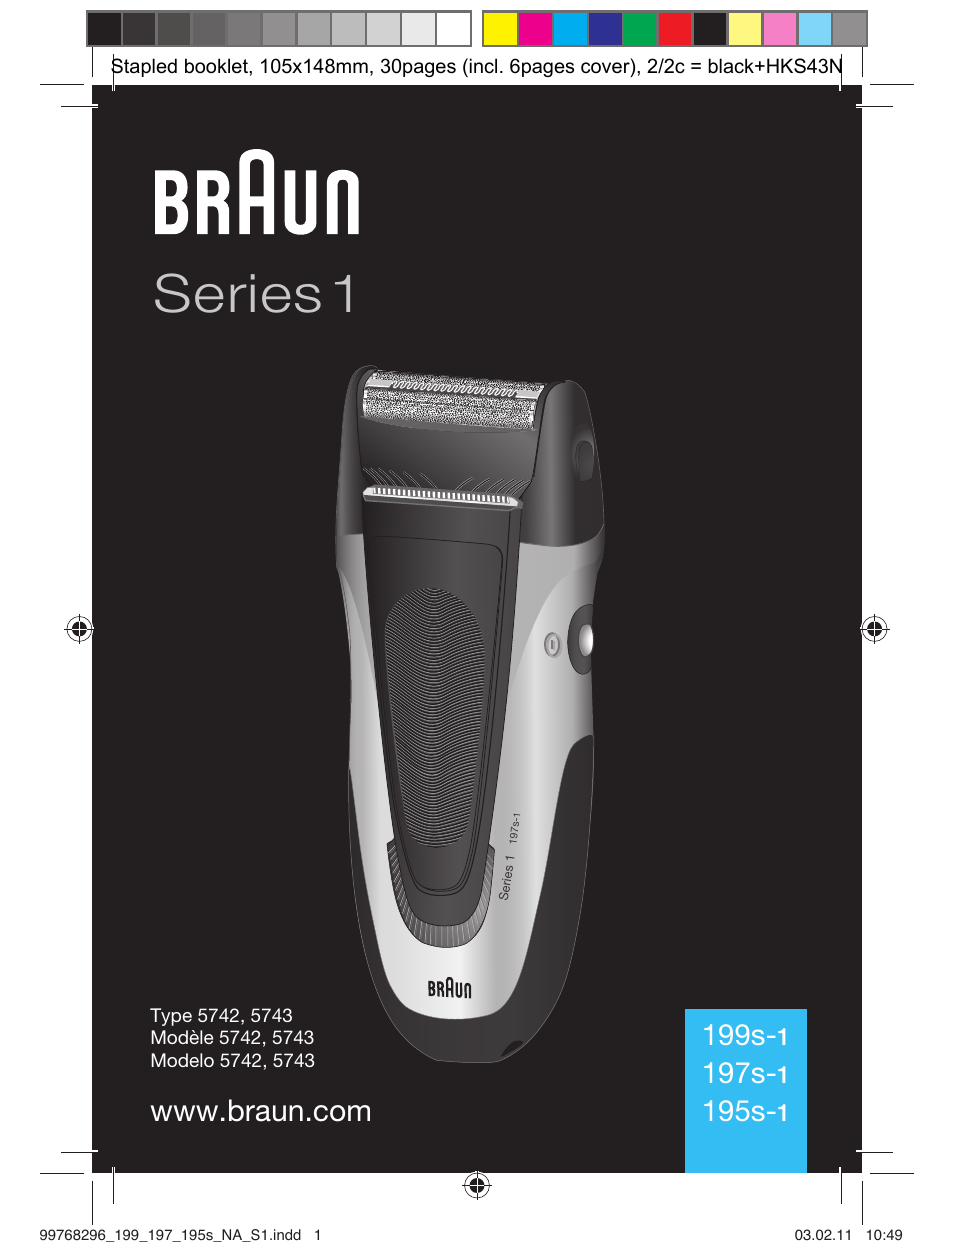 braun 199s 1 series 1 user manual 30 pages also for Braun Shavers Braun Shavers